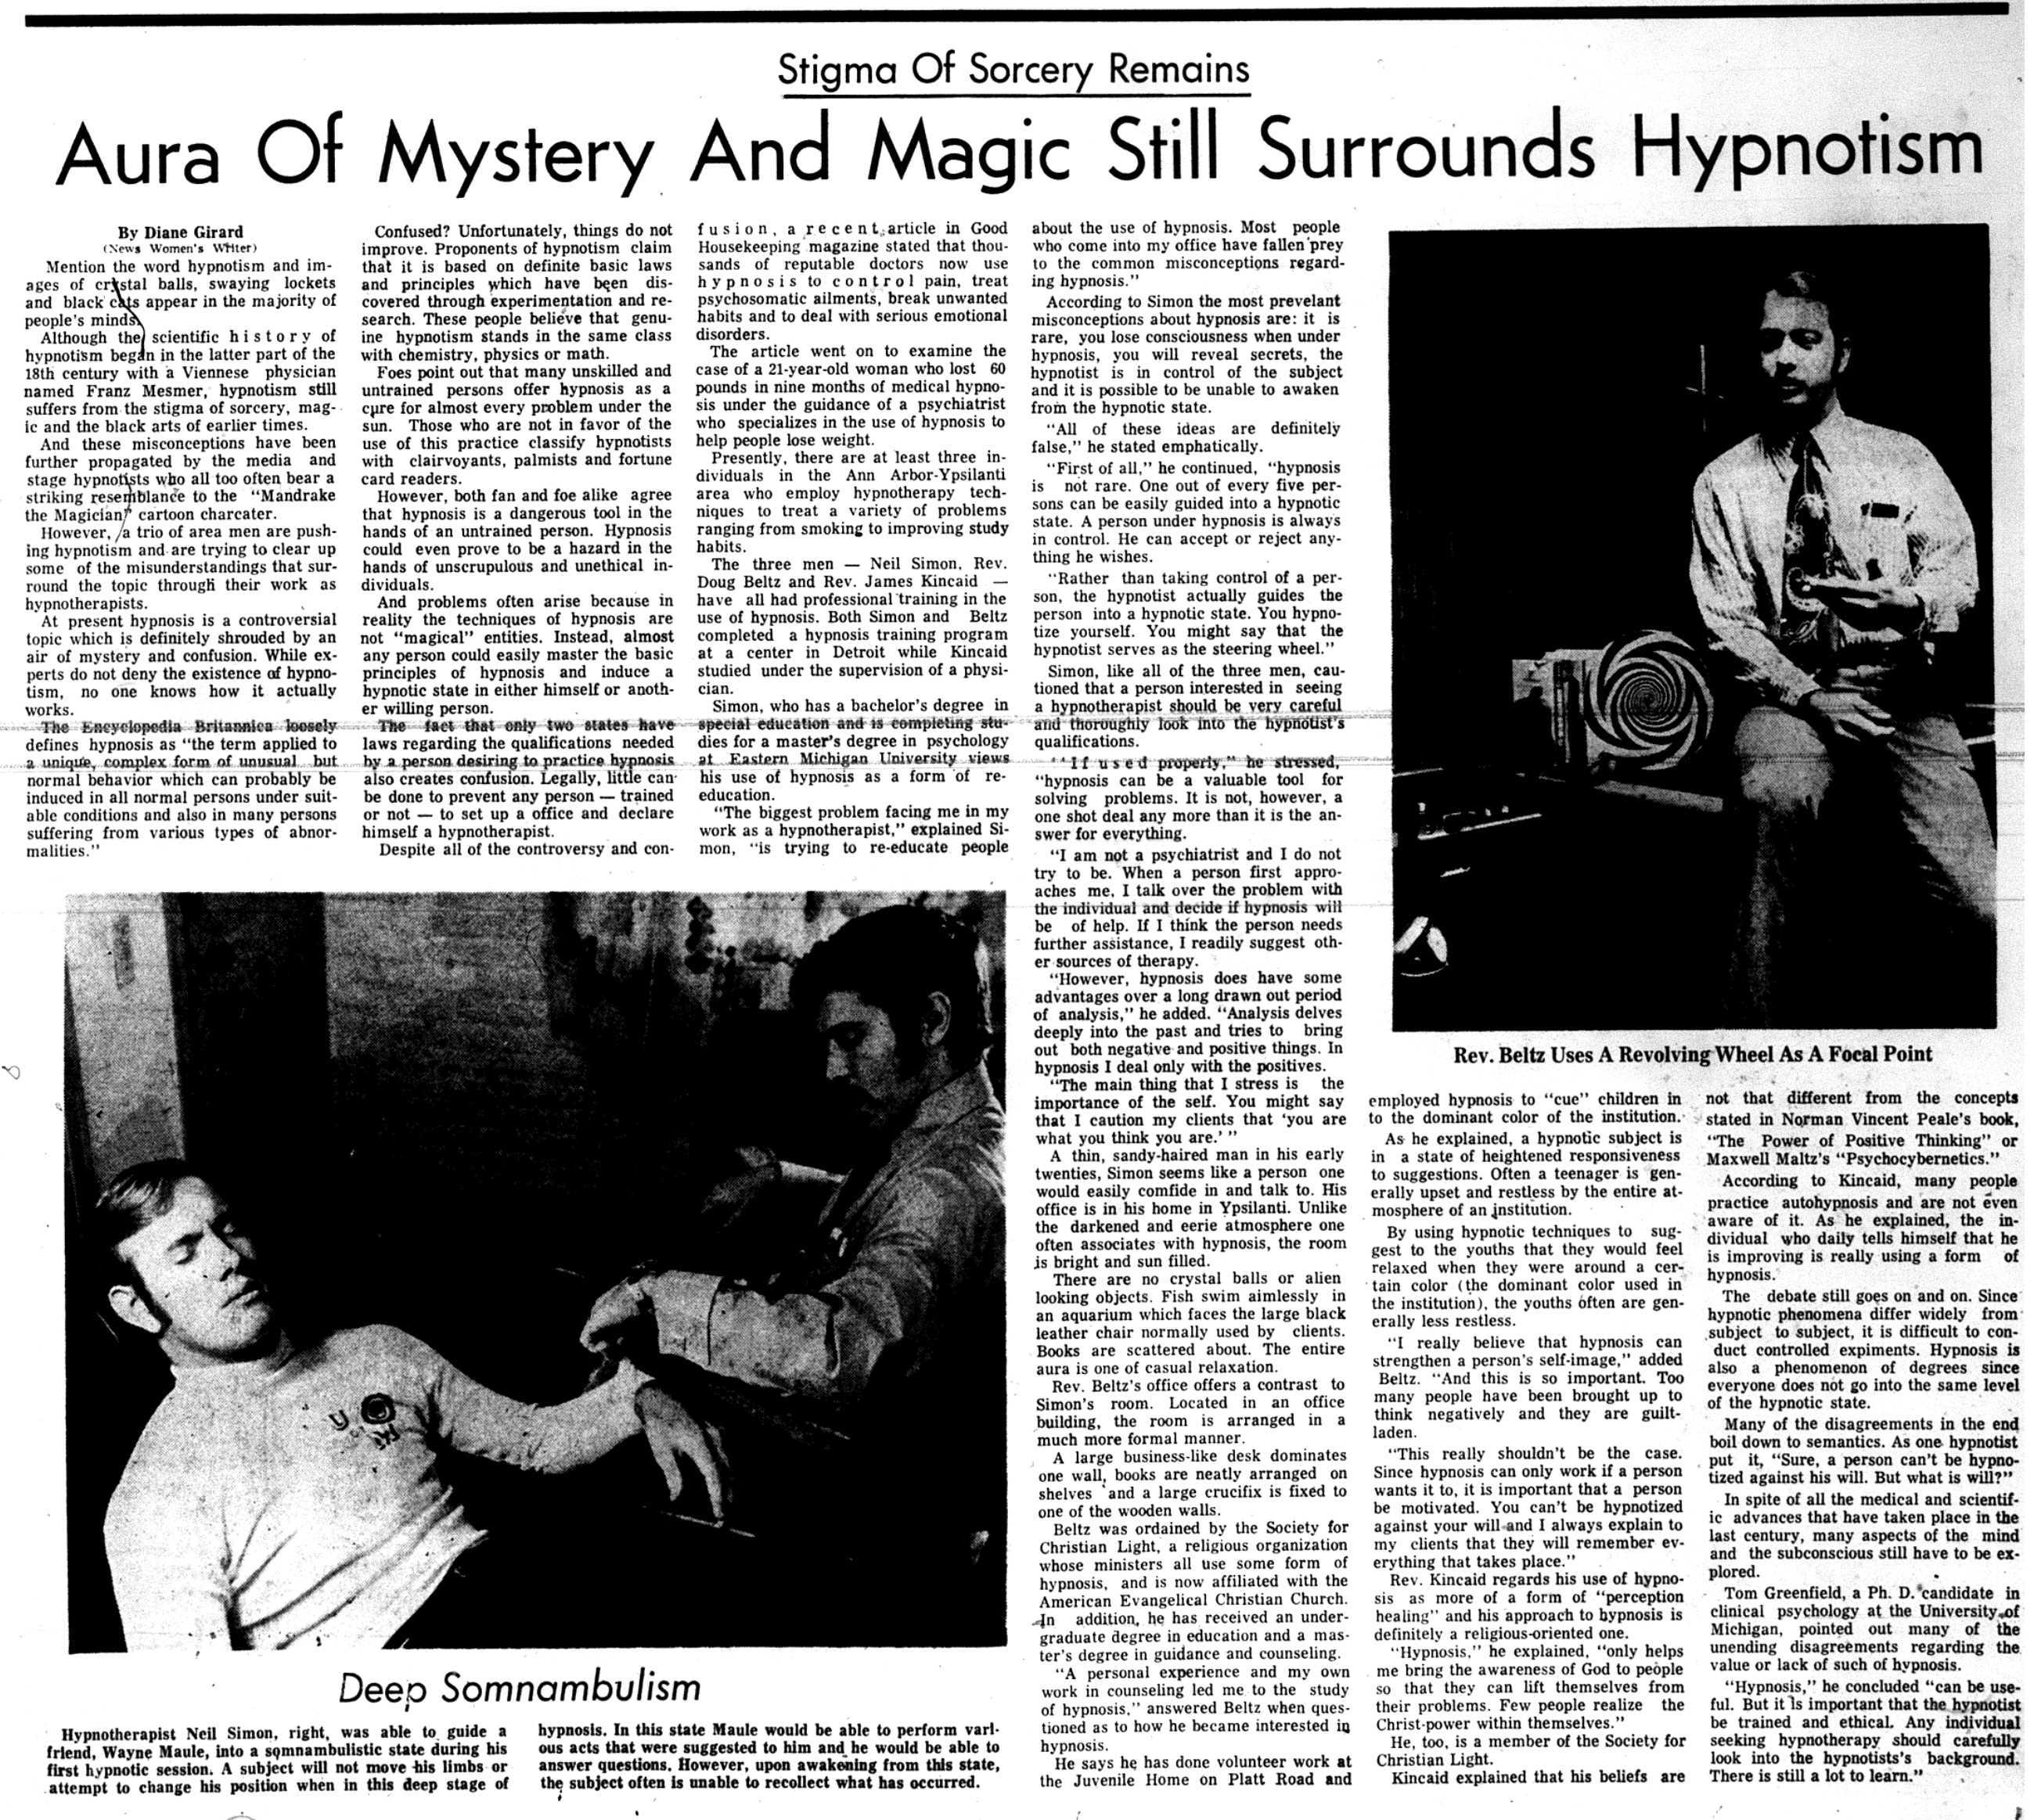 Stigma Of Sorcery Remains. Aura Of Mystery And Magic Still Surrounds Hypnotism image